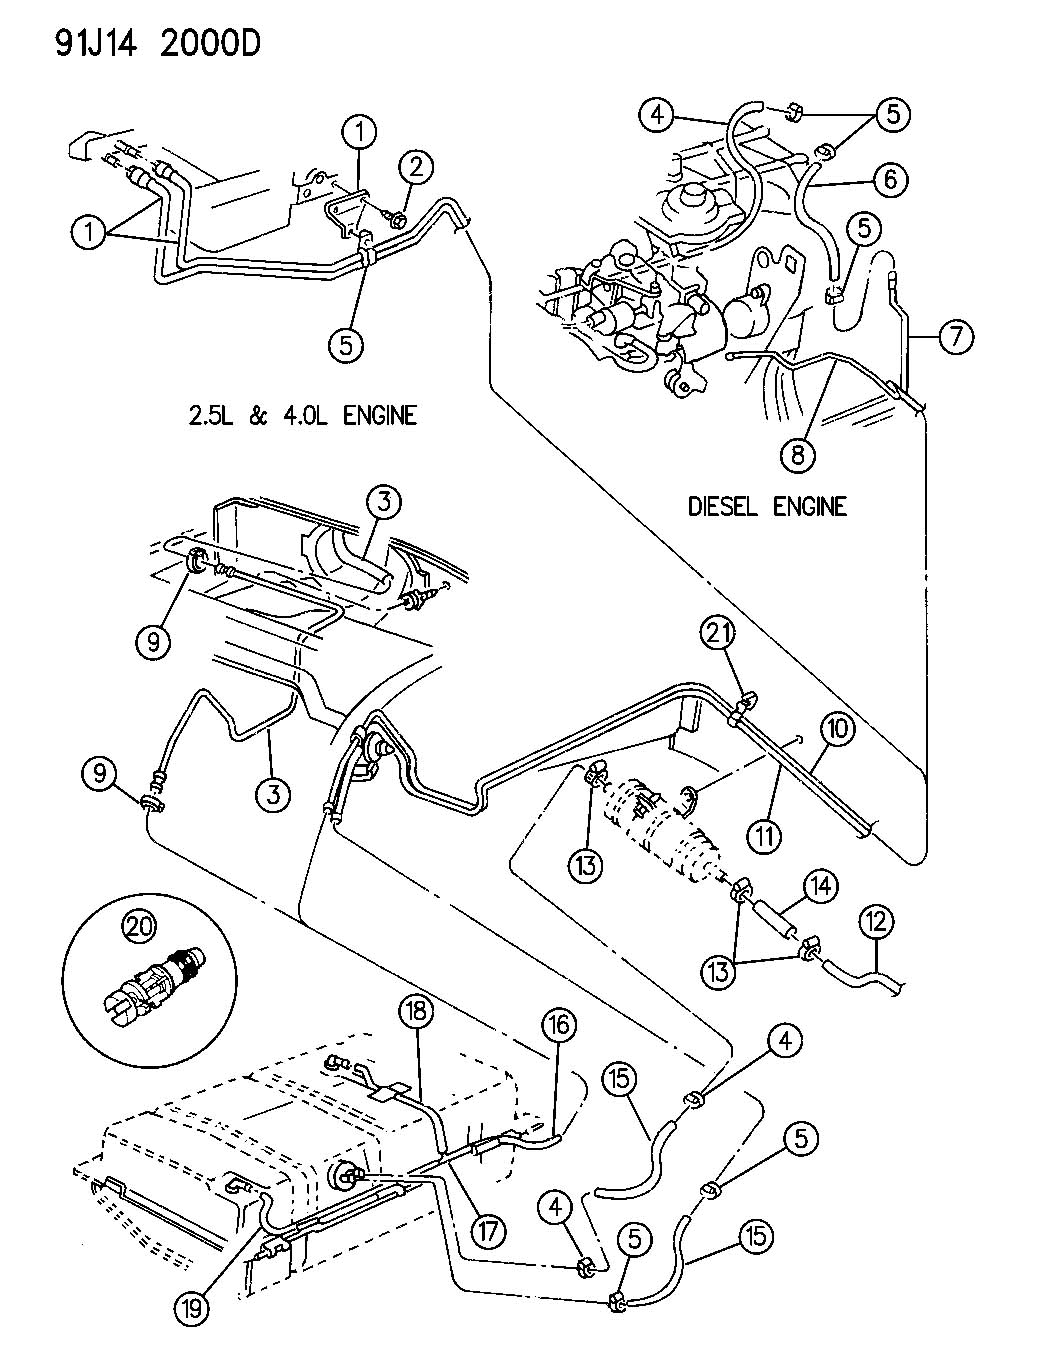 Jeep Wrangler Fuel Line Diagrams Another Blog About Wiring Diagram Service Manual How To Unblock Inside 1992 1987